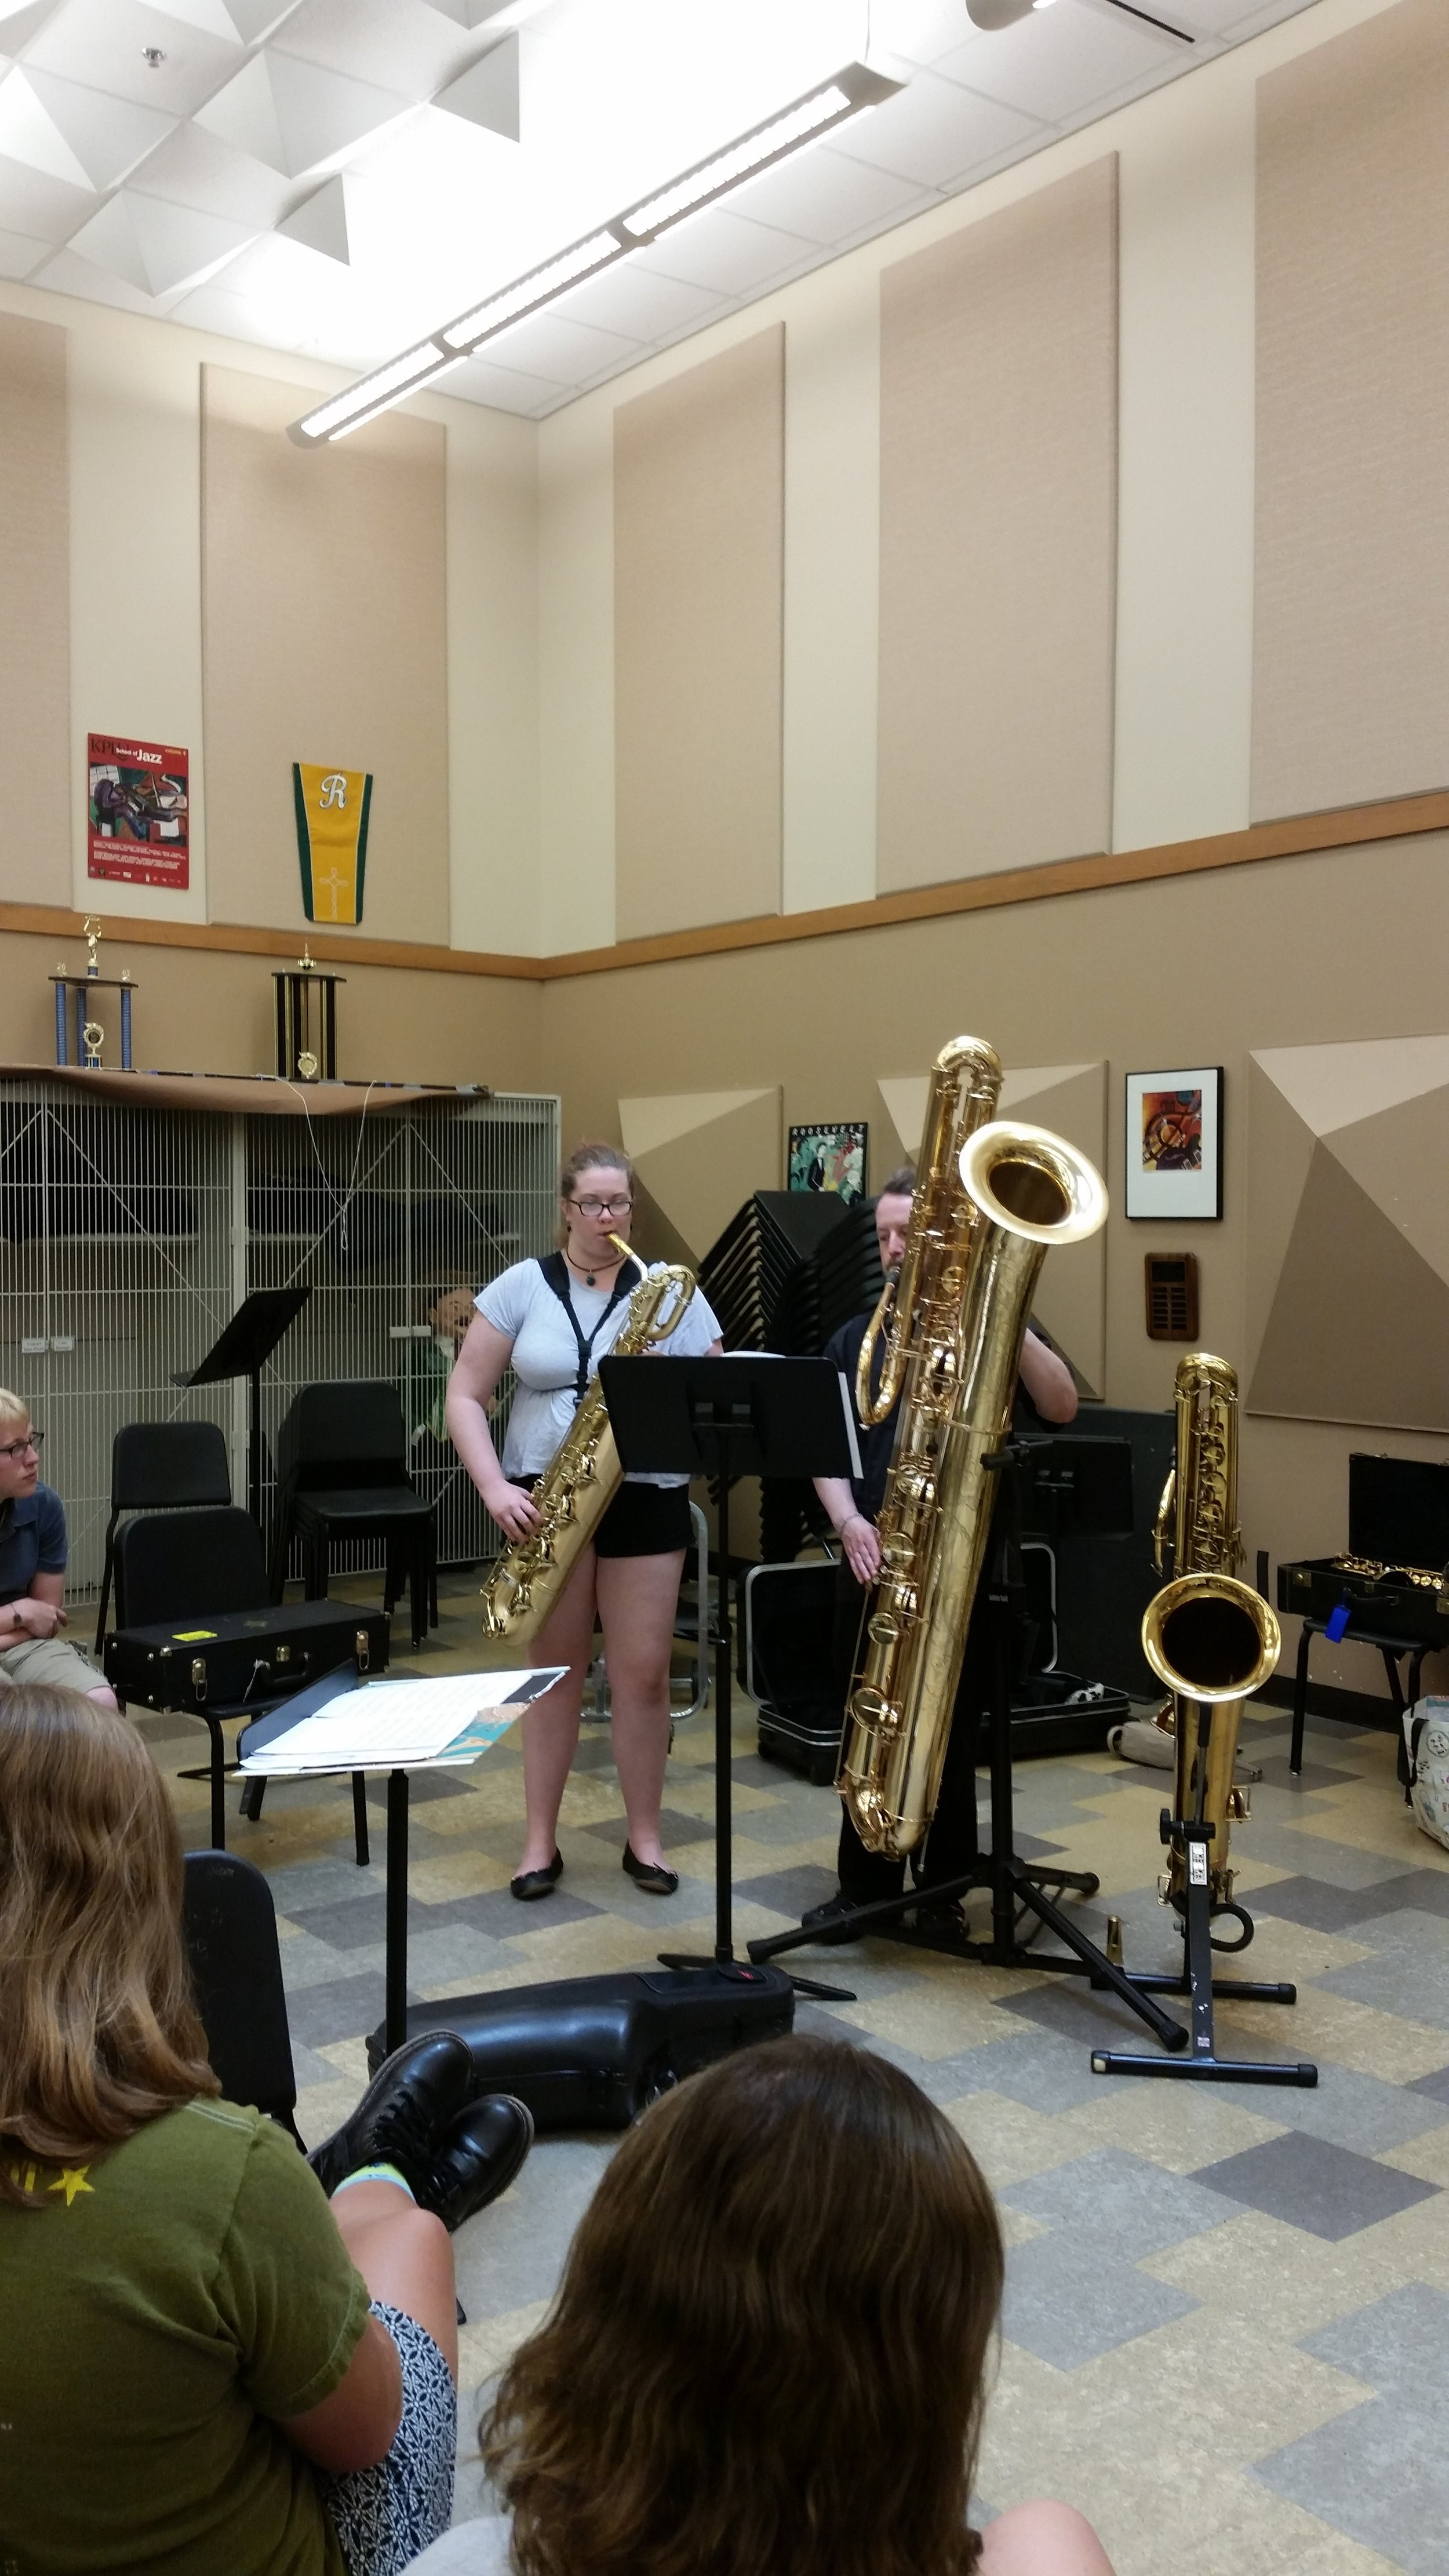 Annie Saltee, a bari saxophonist camp attendee, plays a duet with guest artist Dr. Jay Easton on the contra-bass saxophone.